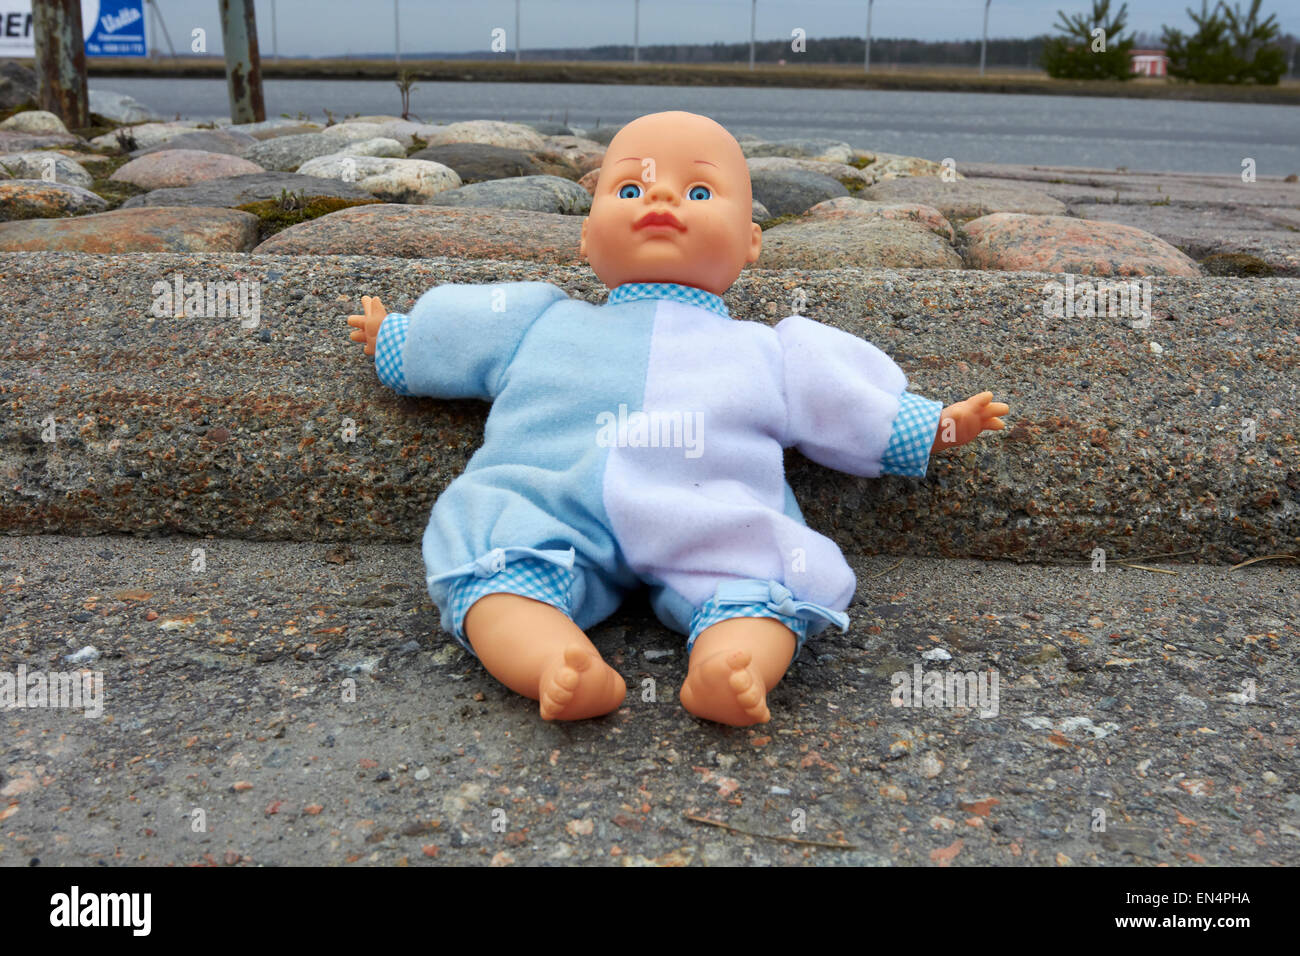 lost doll outdoors, Finland - Stock Image